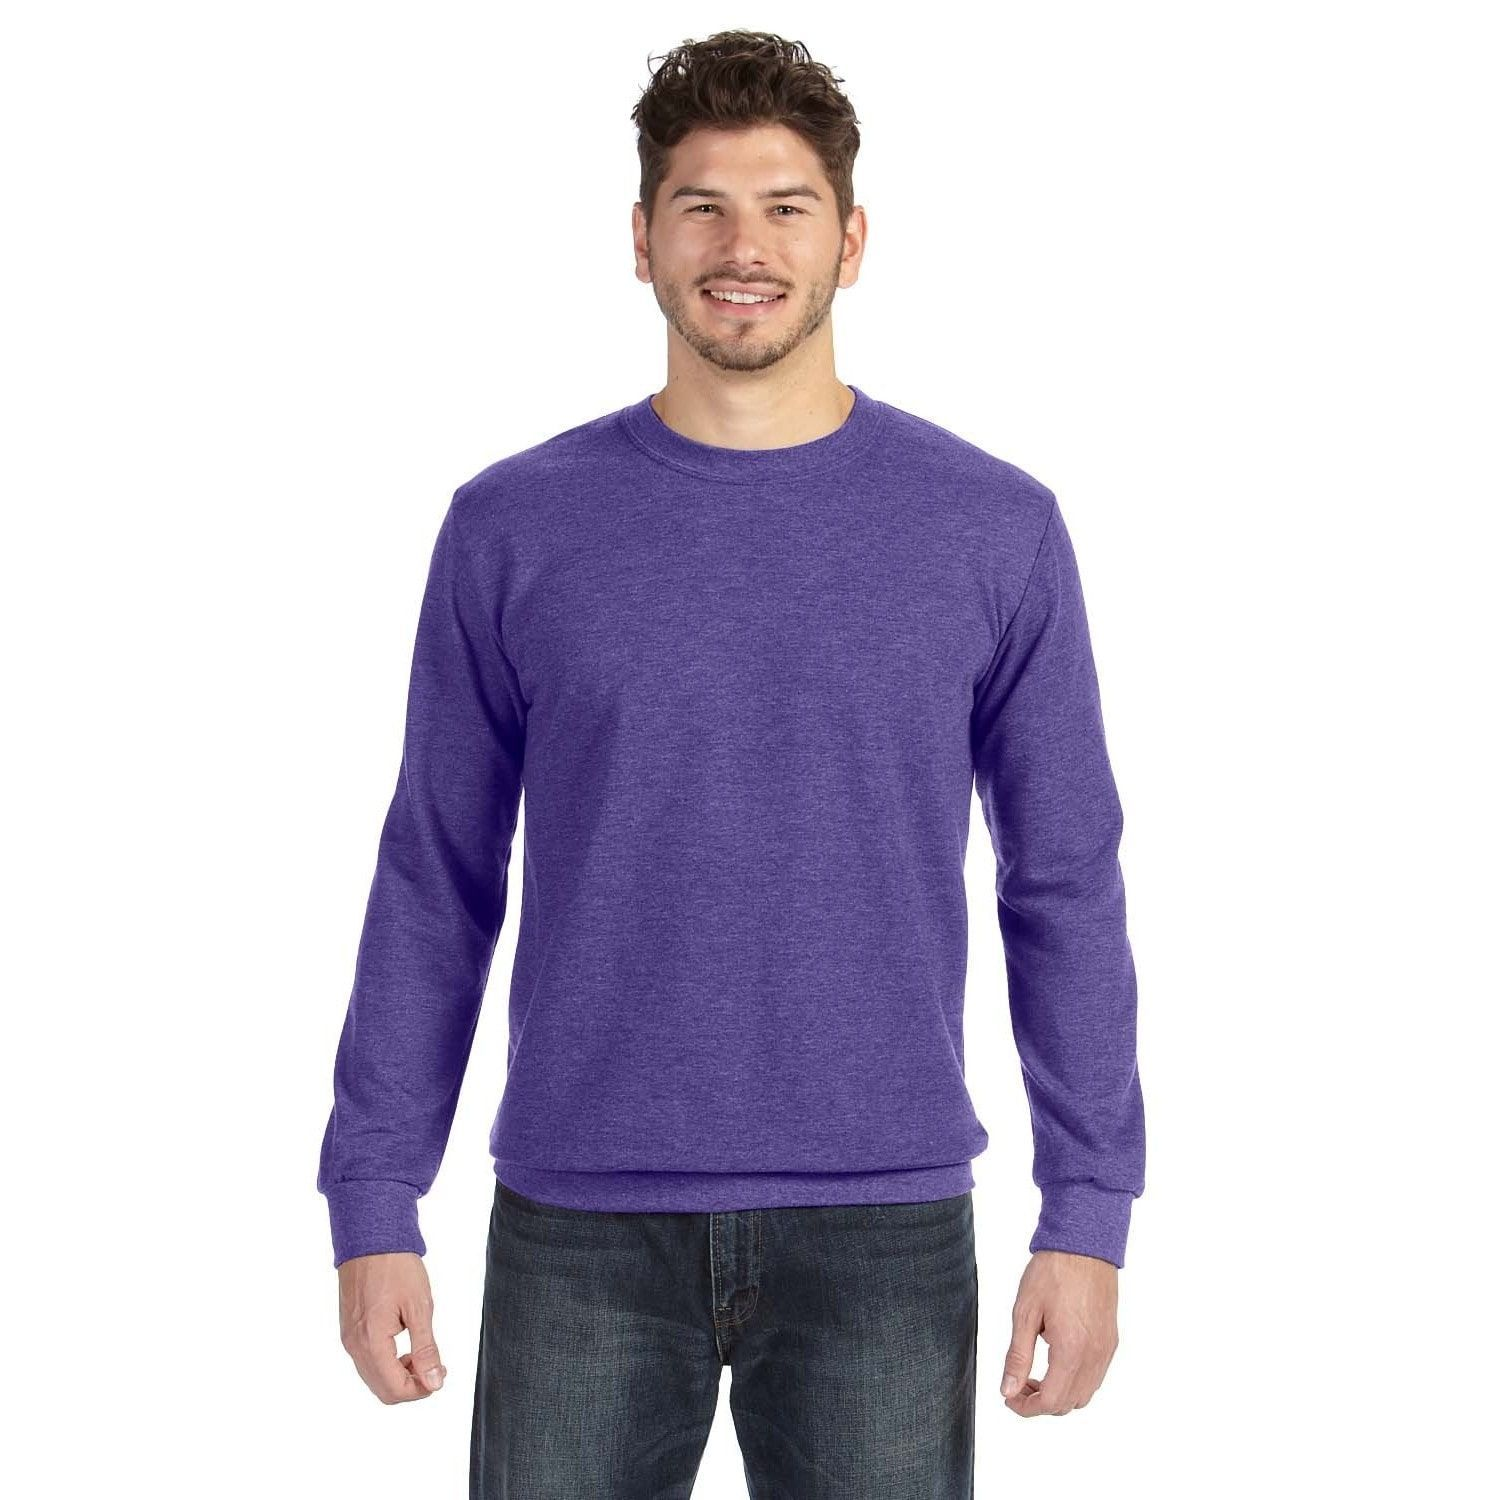 Adult Crew-Neck Men's French Terry Heather Sweater | Products ...